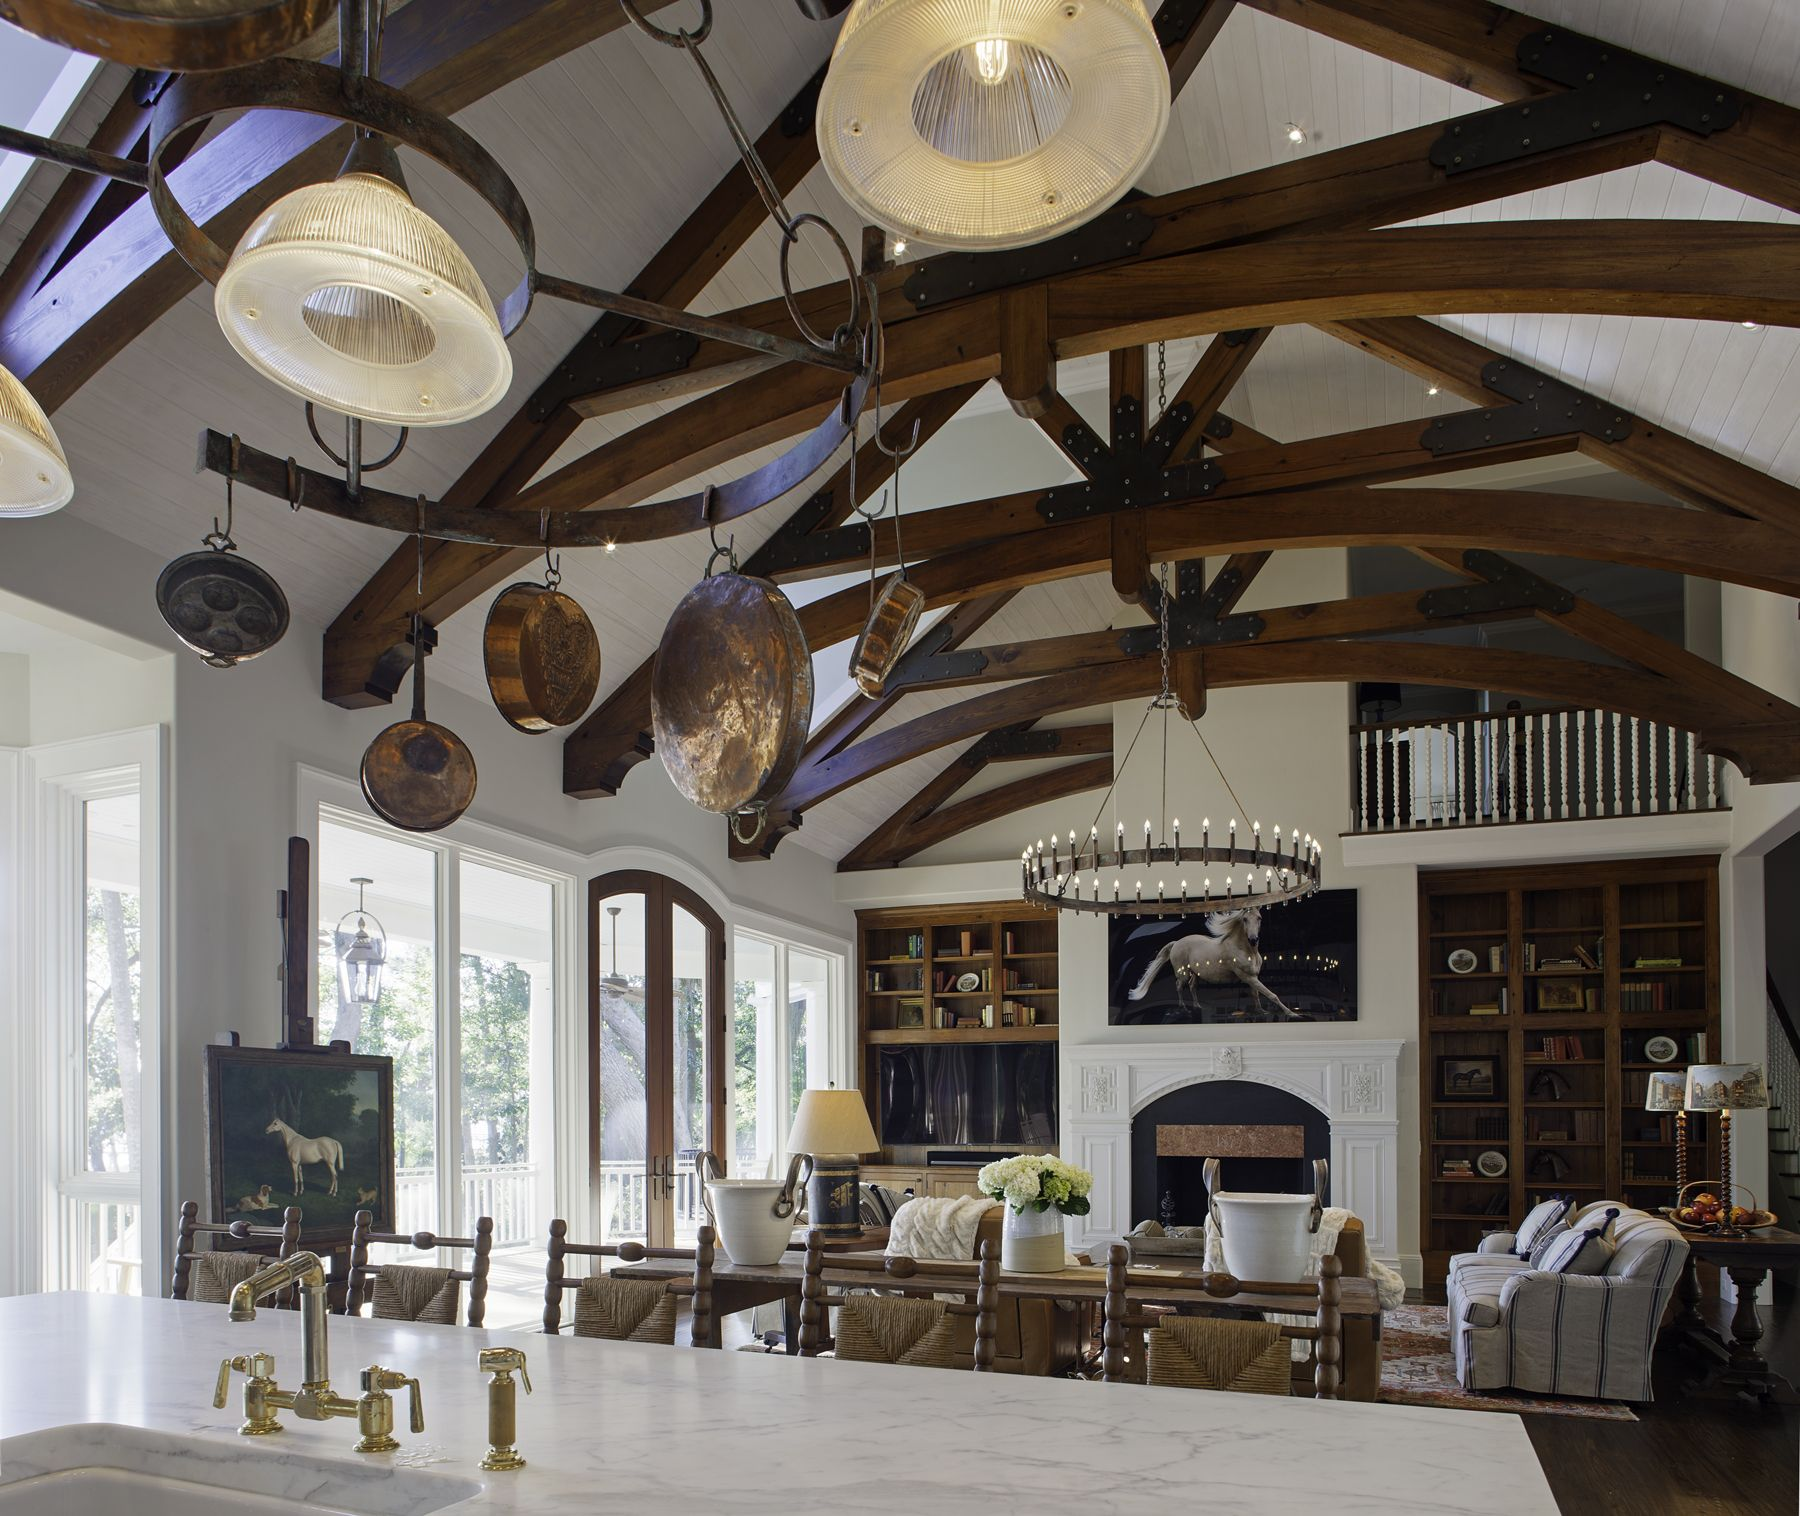 Designer Cyndie Seely created a space where a family of Anglophiles and animal lovers could relax.